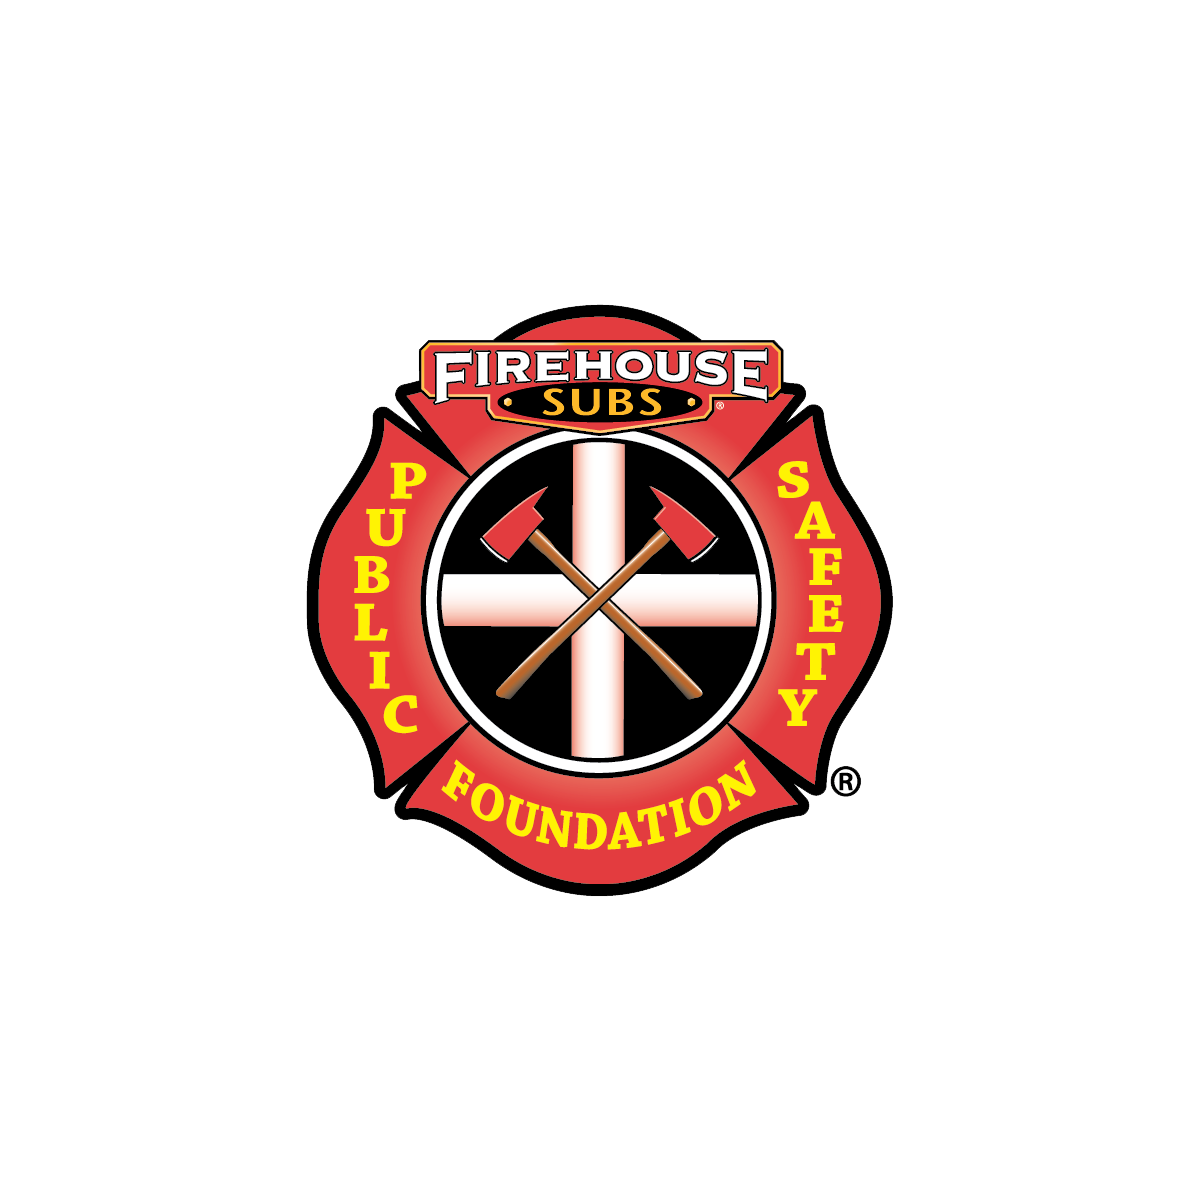 FIREHOUSE SUBS PUBLIC SAFETY FOUNDATION FIGHTS BACK AGAINST SUDDEN CARDIAC ARREST